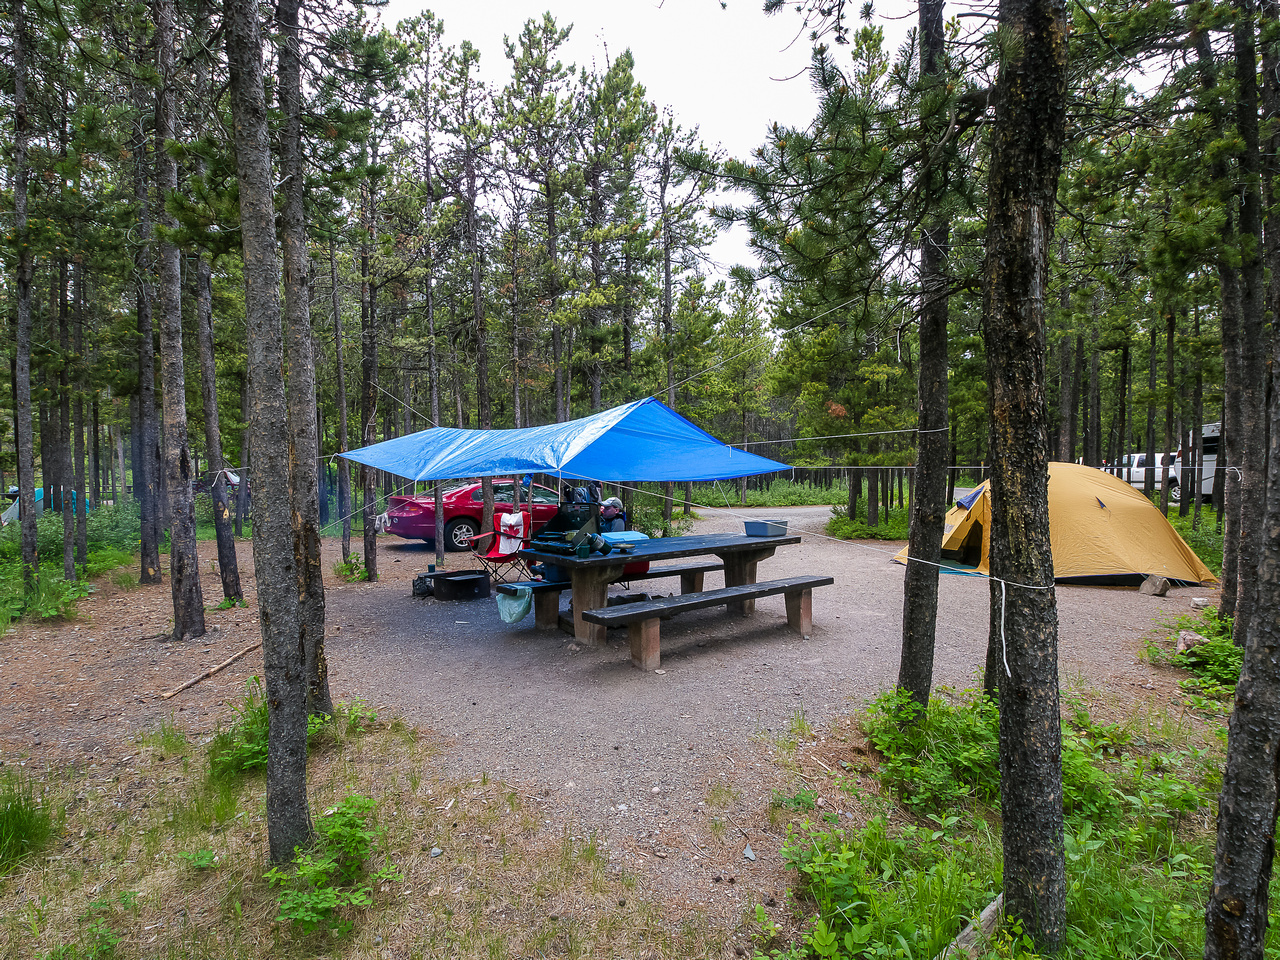 Back at the campsite in the Crandell Lake Campground